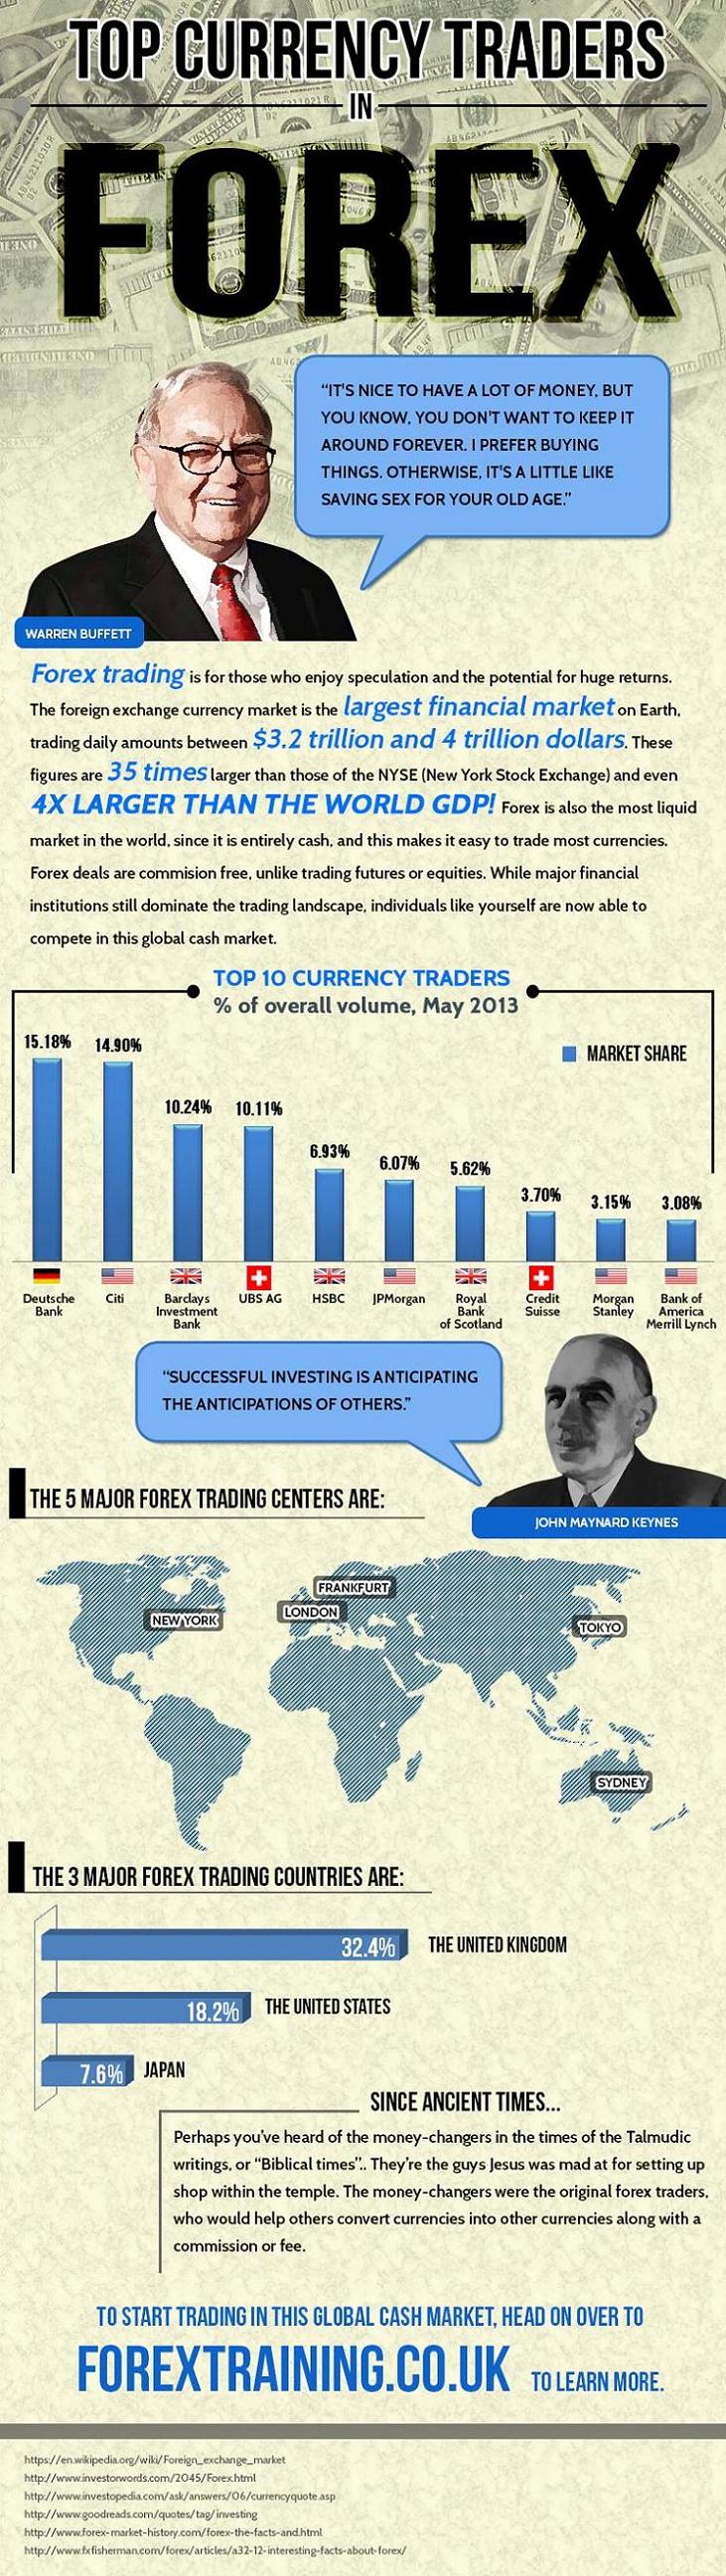 Top 10 best forex traders in the world